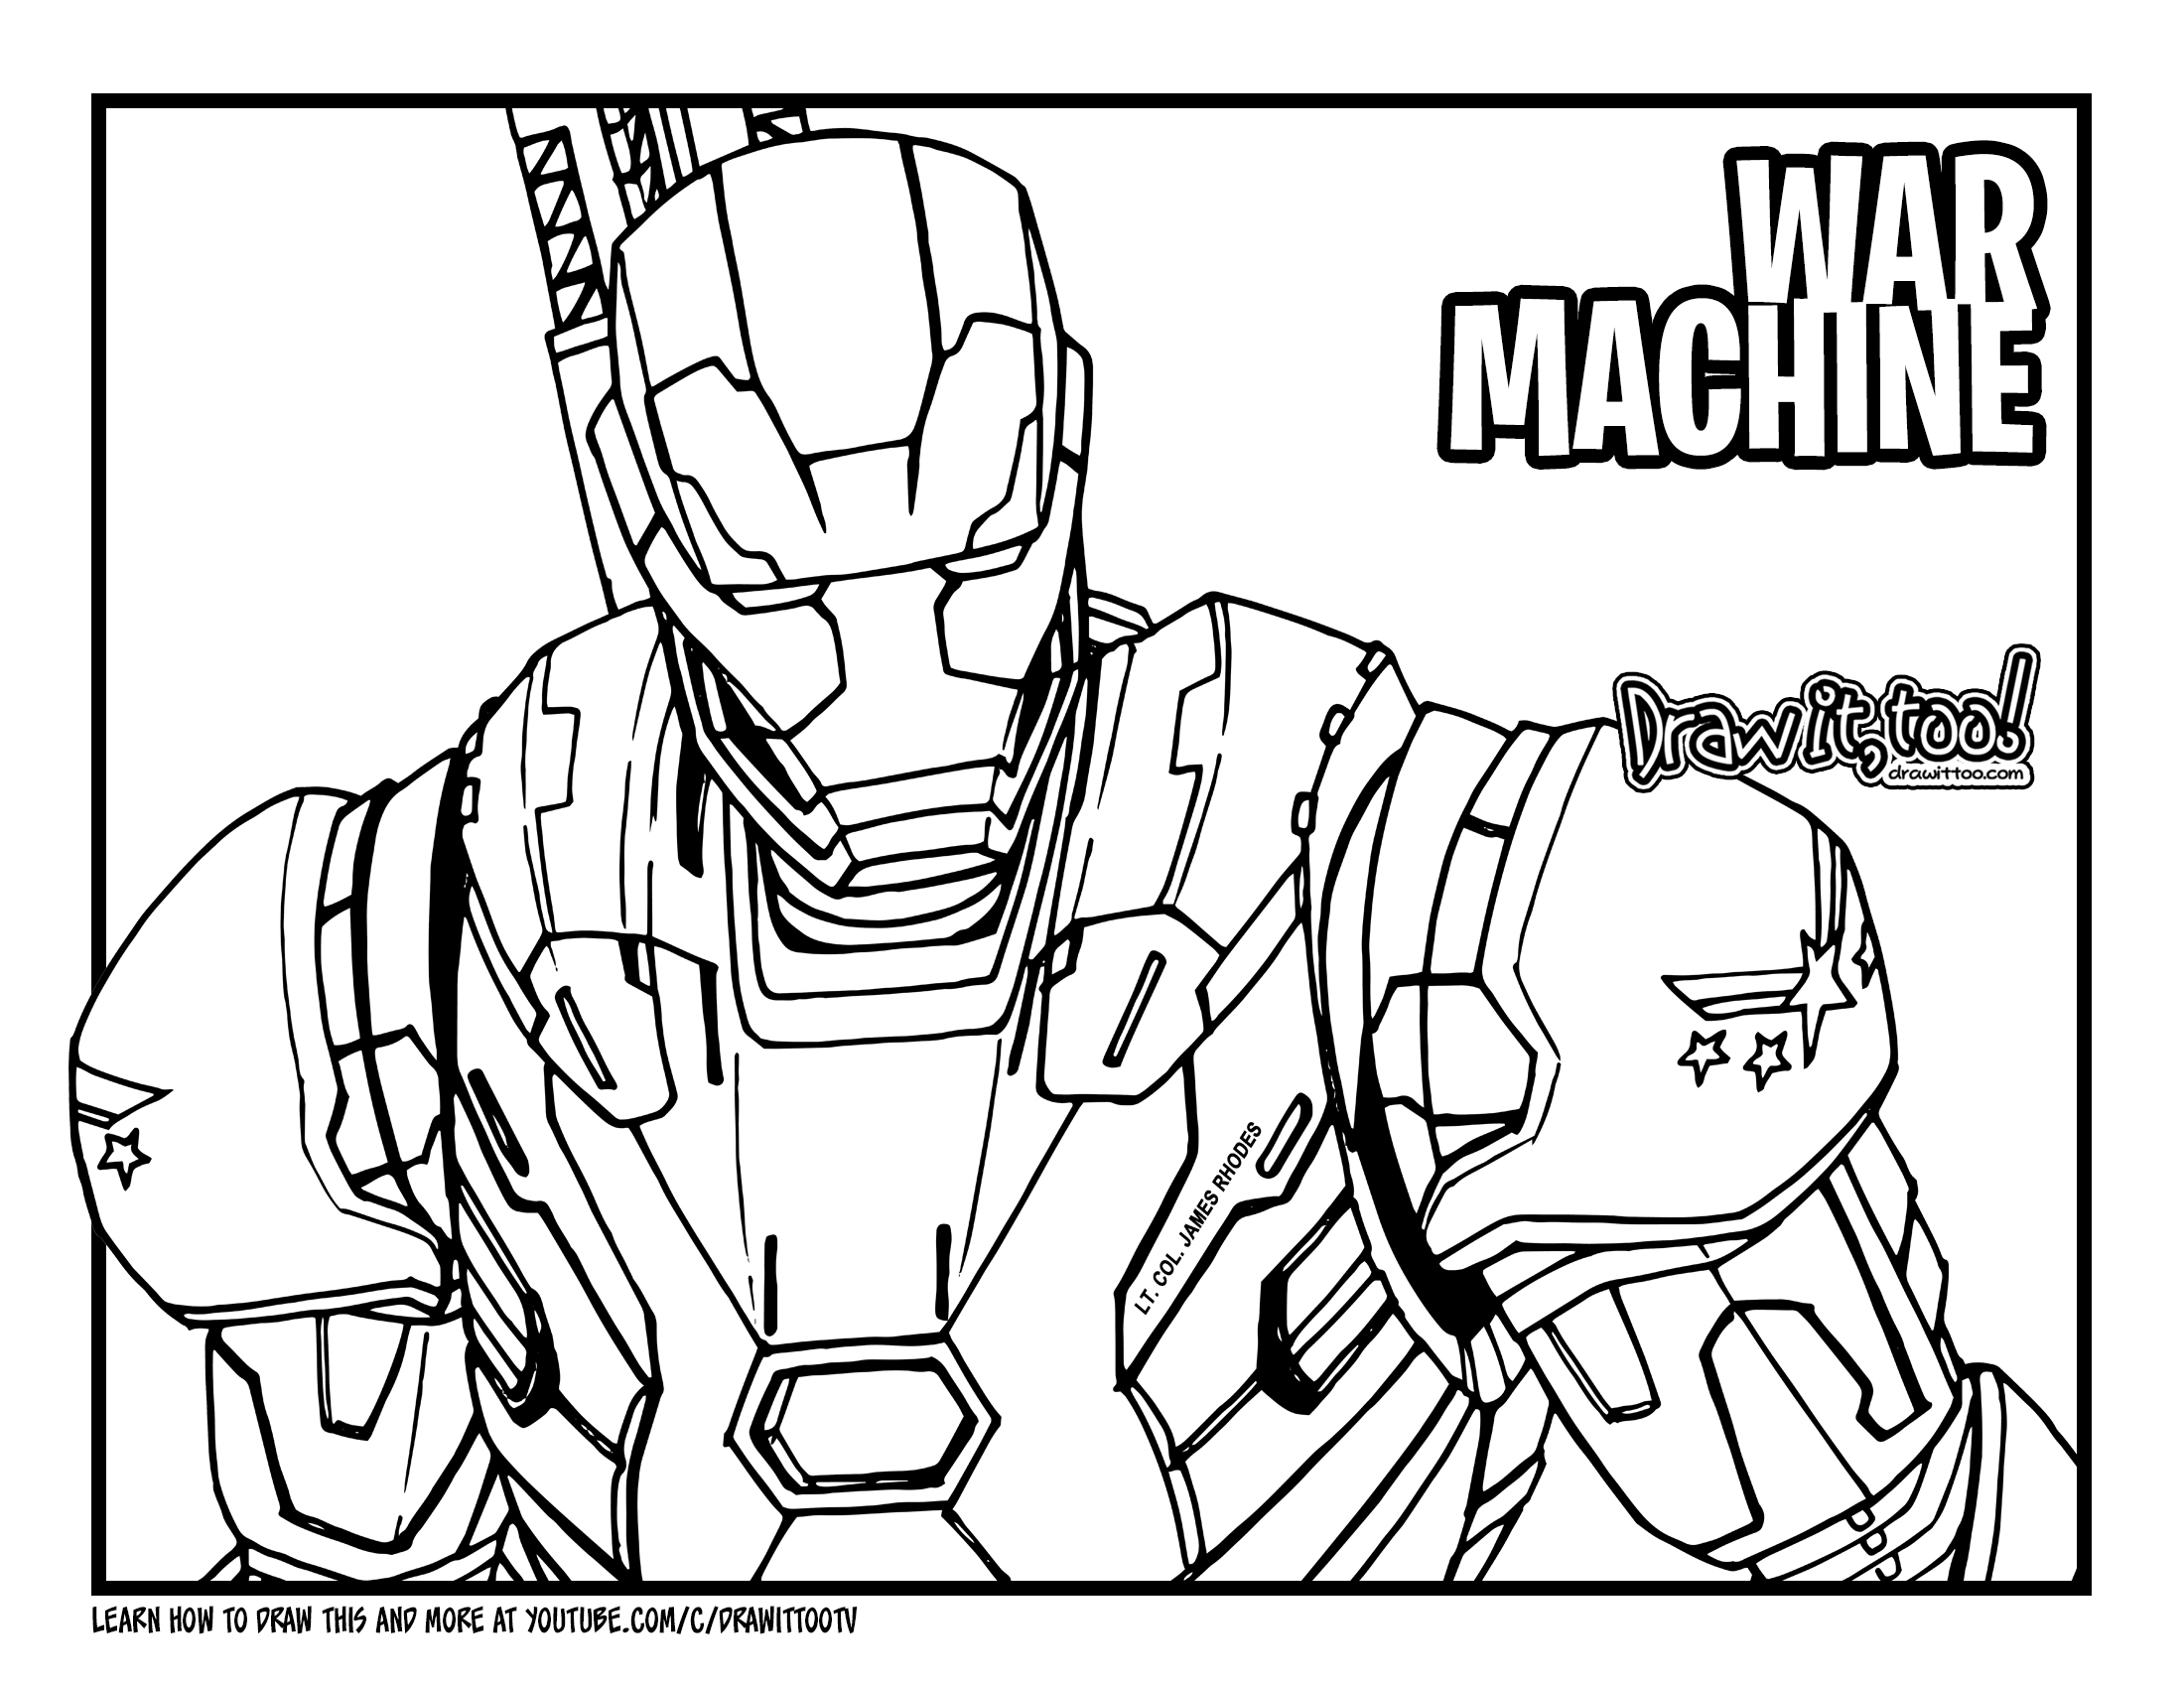 How to Draw WAR MACHINE (Avengers: Endgame) Drawing